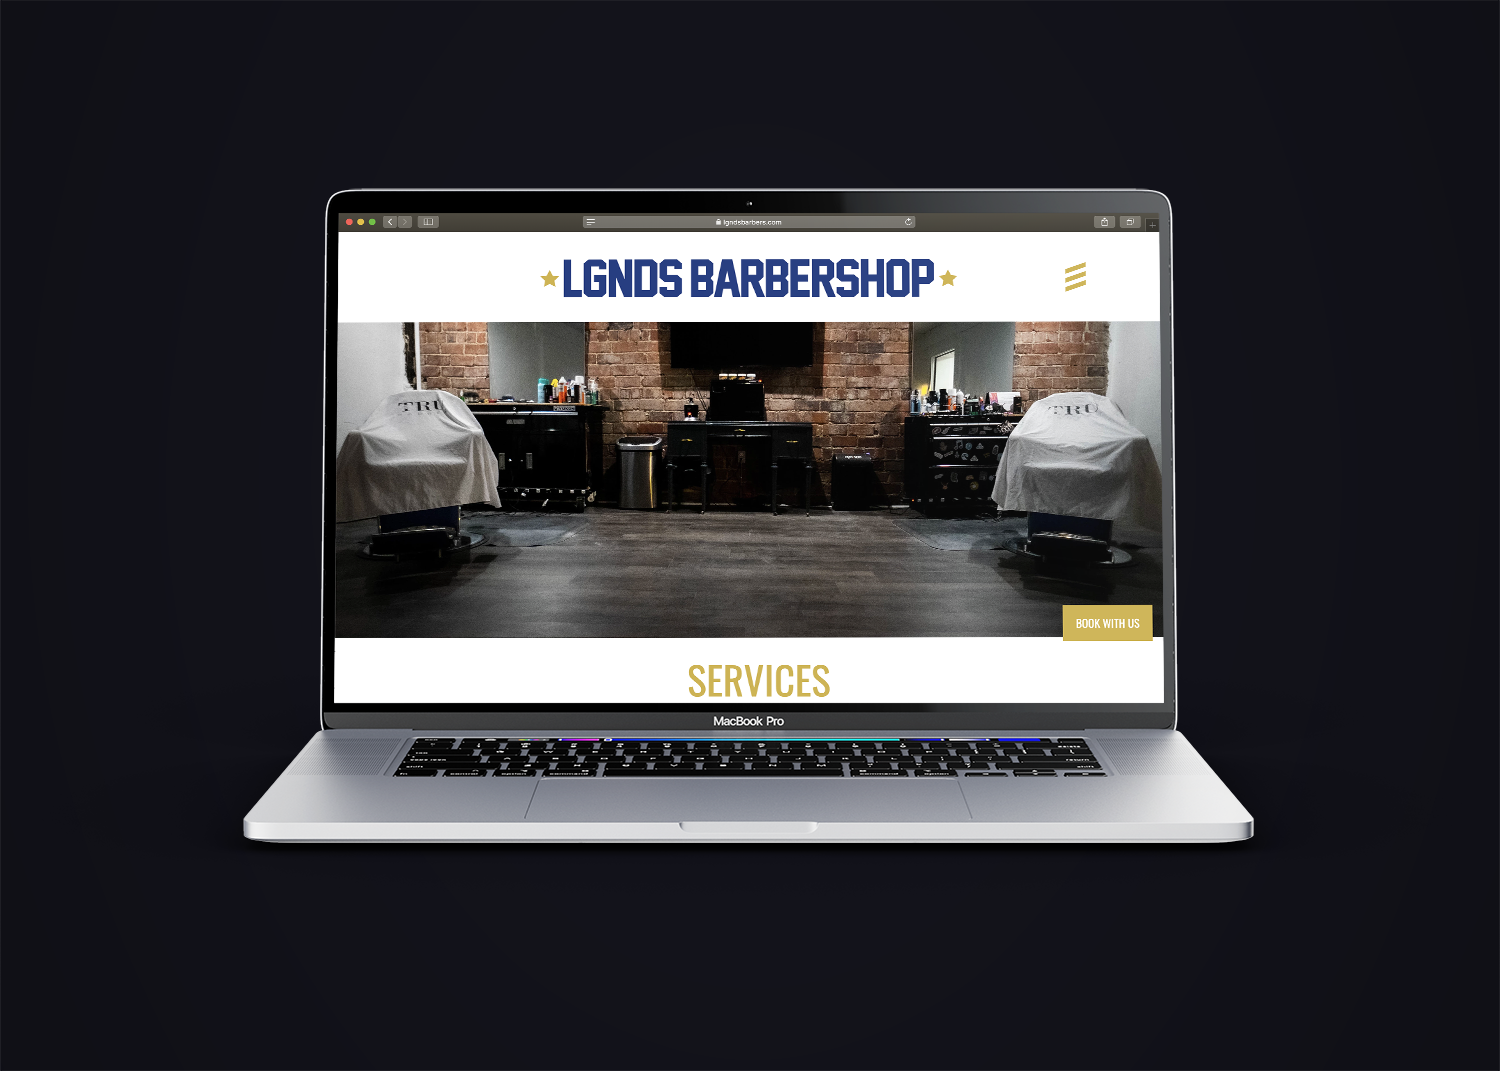 LGNDS website mockup